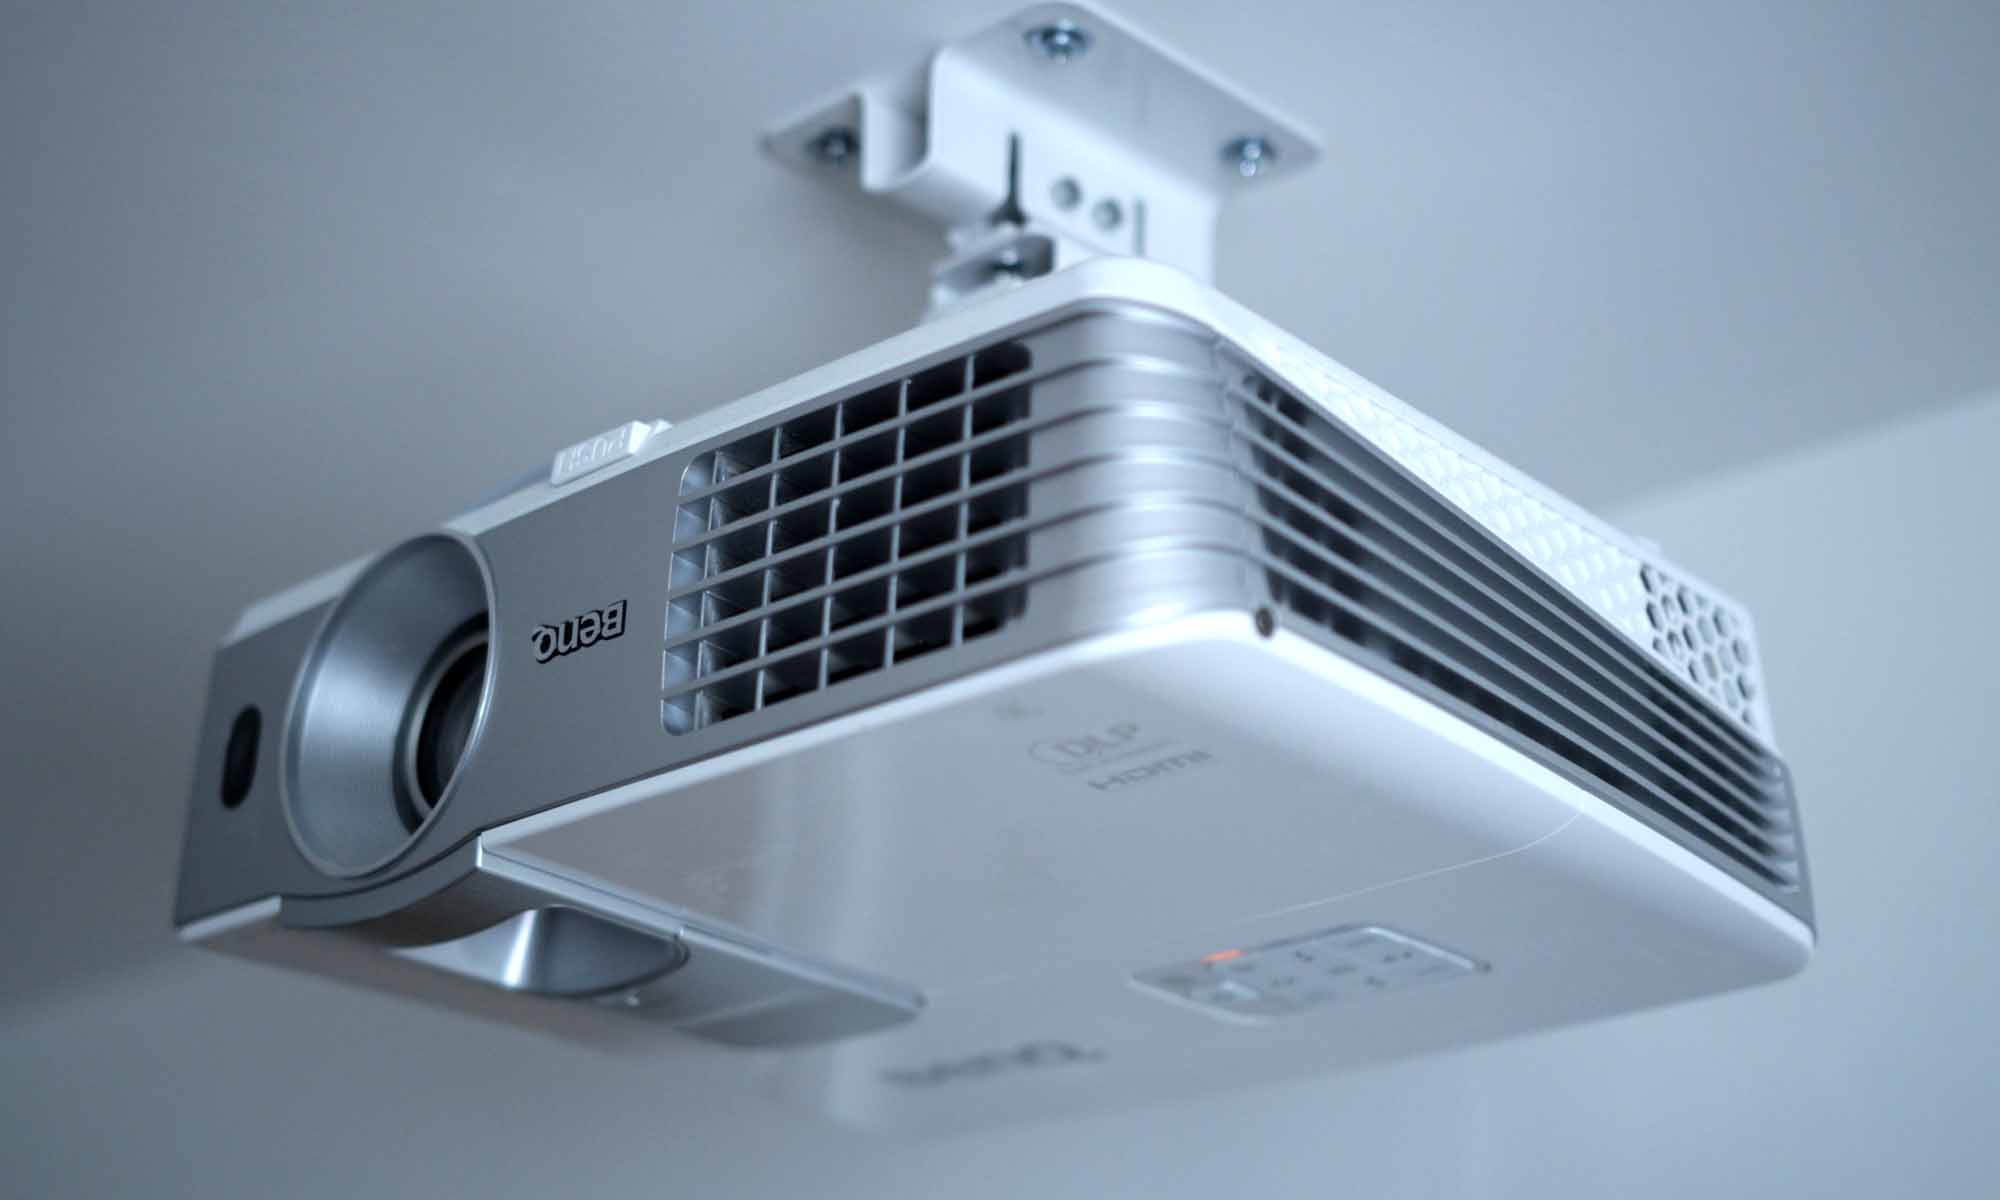 How To Install Benq Projector Ceiling Mount Integralbook Com